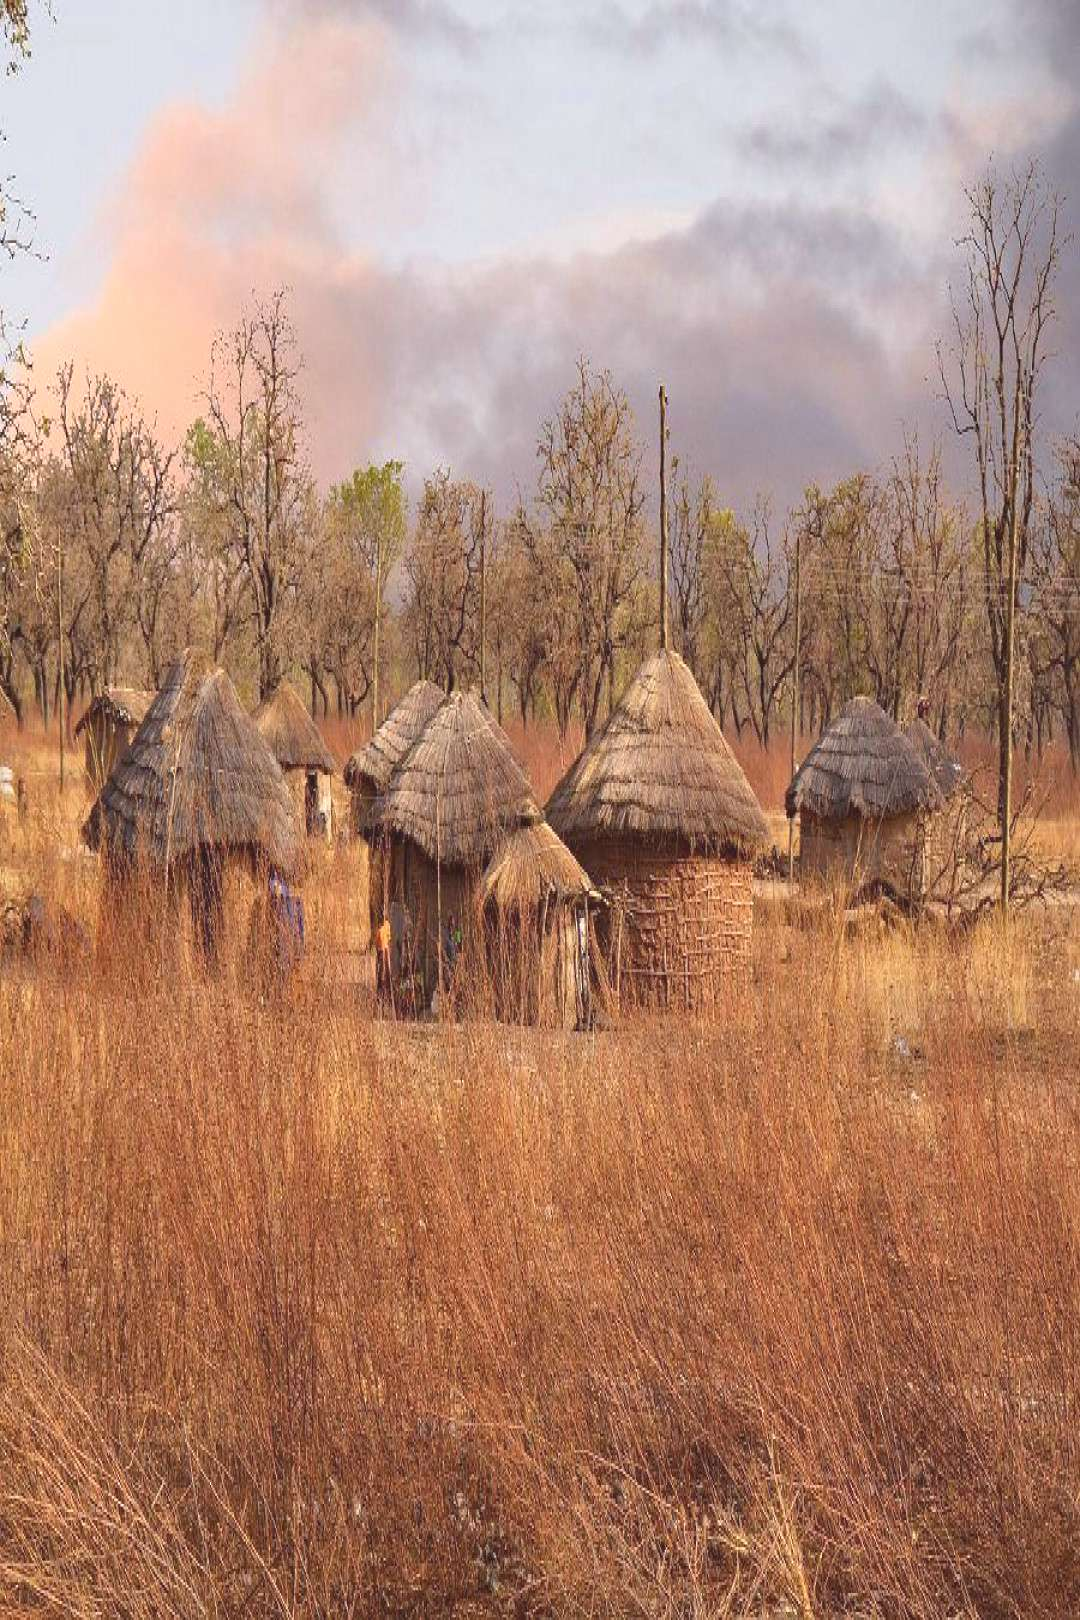 Top 10 Common Misconceptions About Africa - Stereotypes amp Myths Ghana village in West Africa.